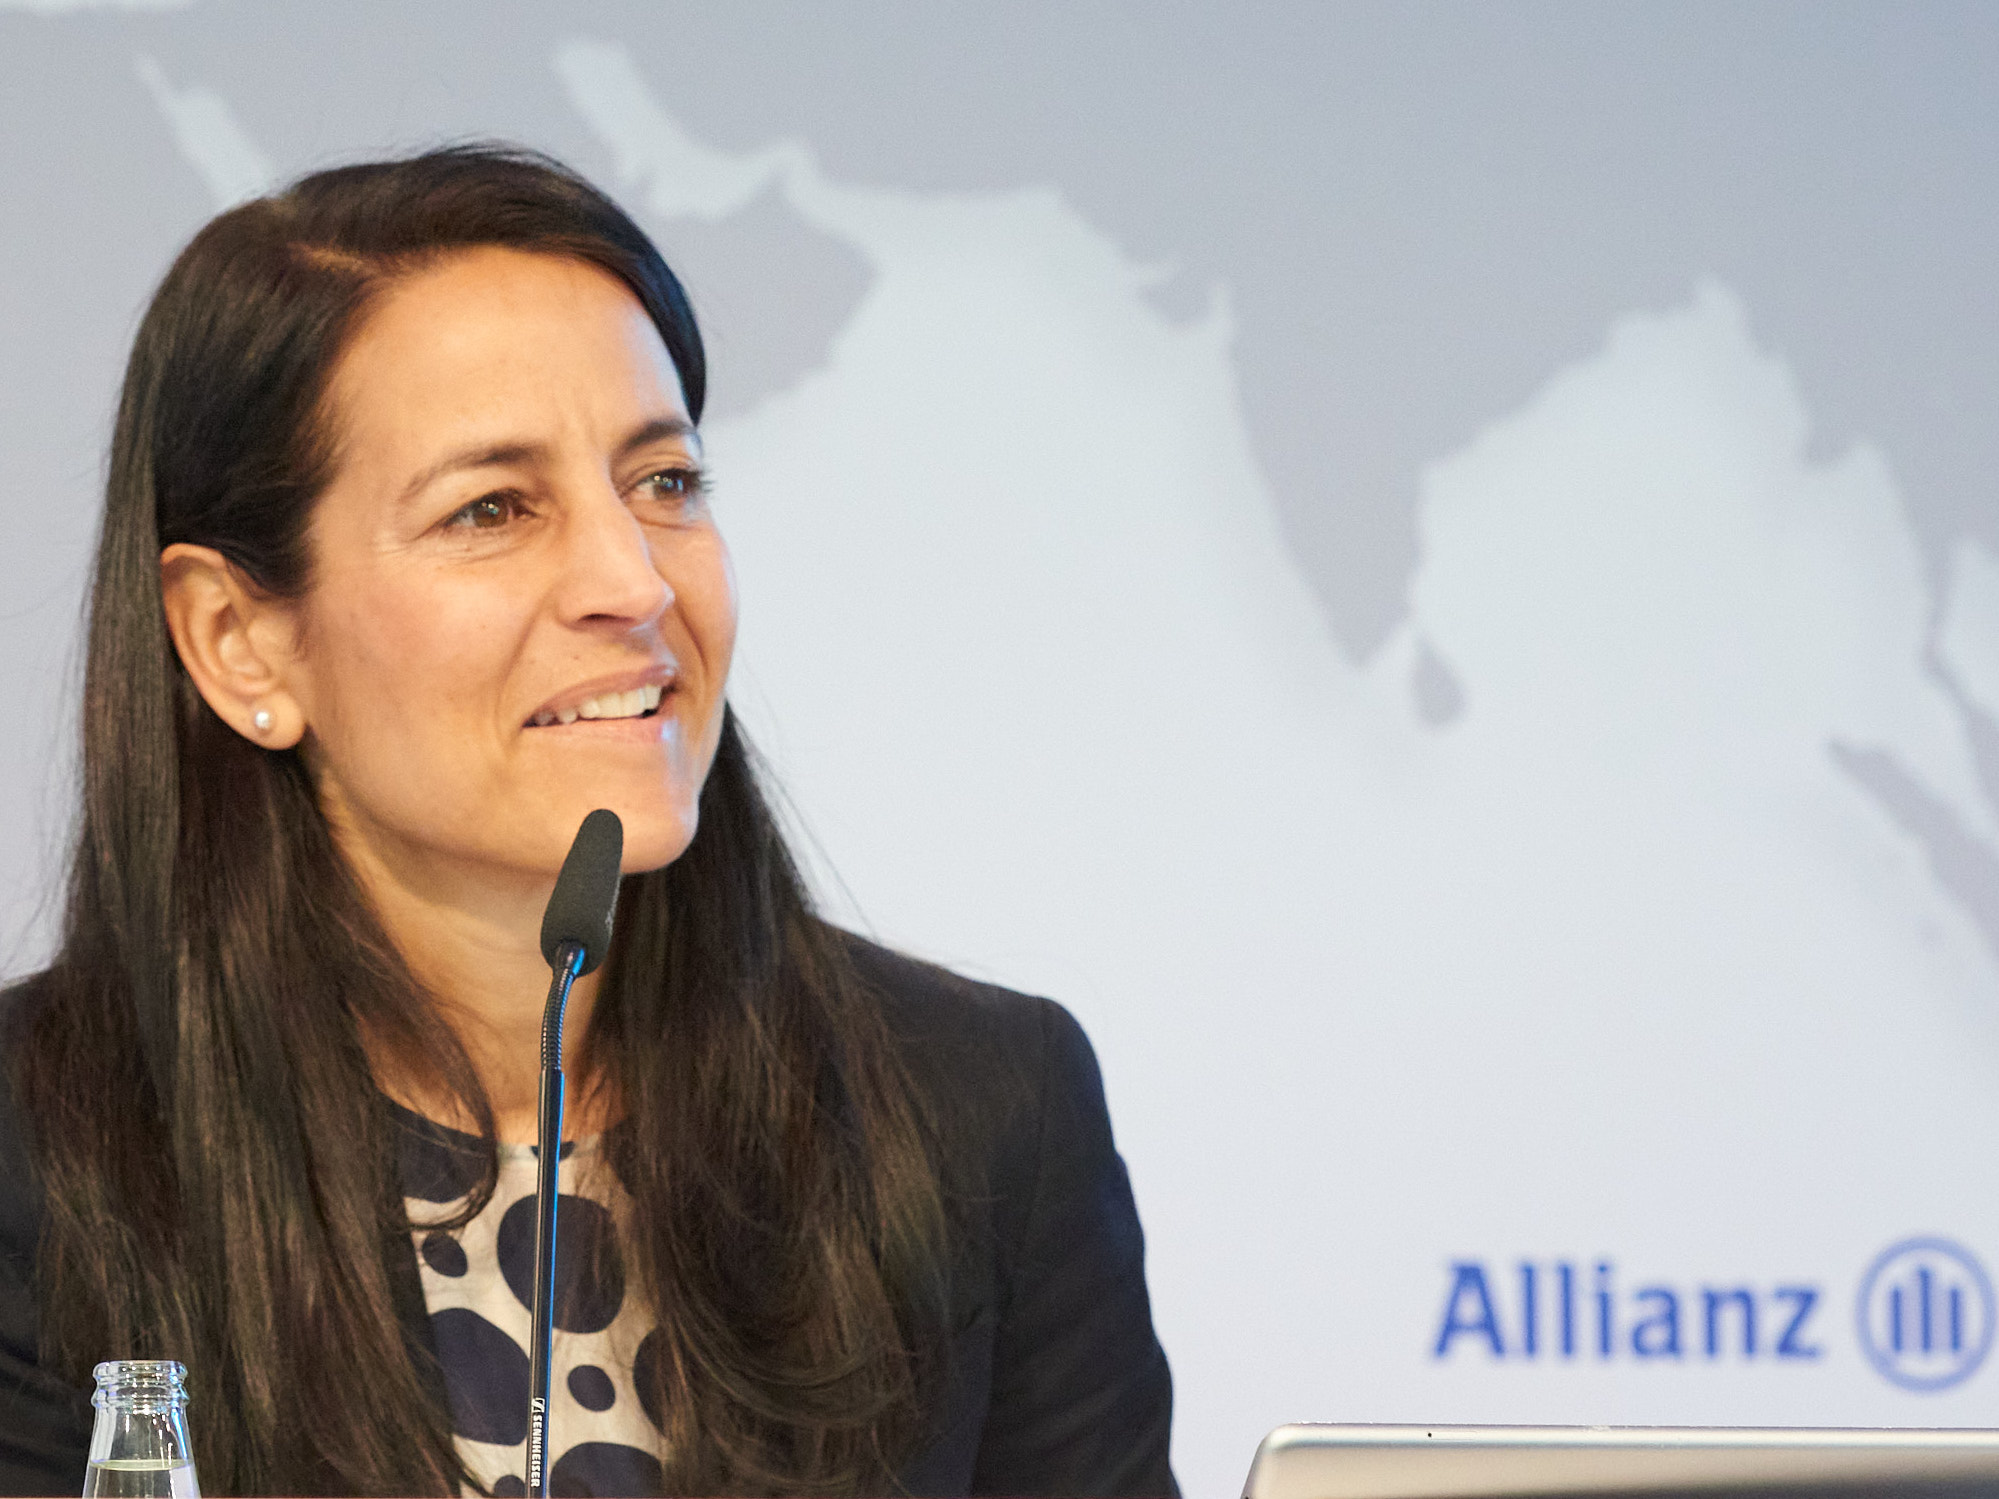 Allianz's Sabia Schwarzer To Receive Outstanding Individual Achievement SABRE